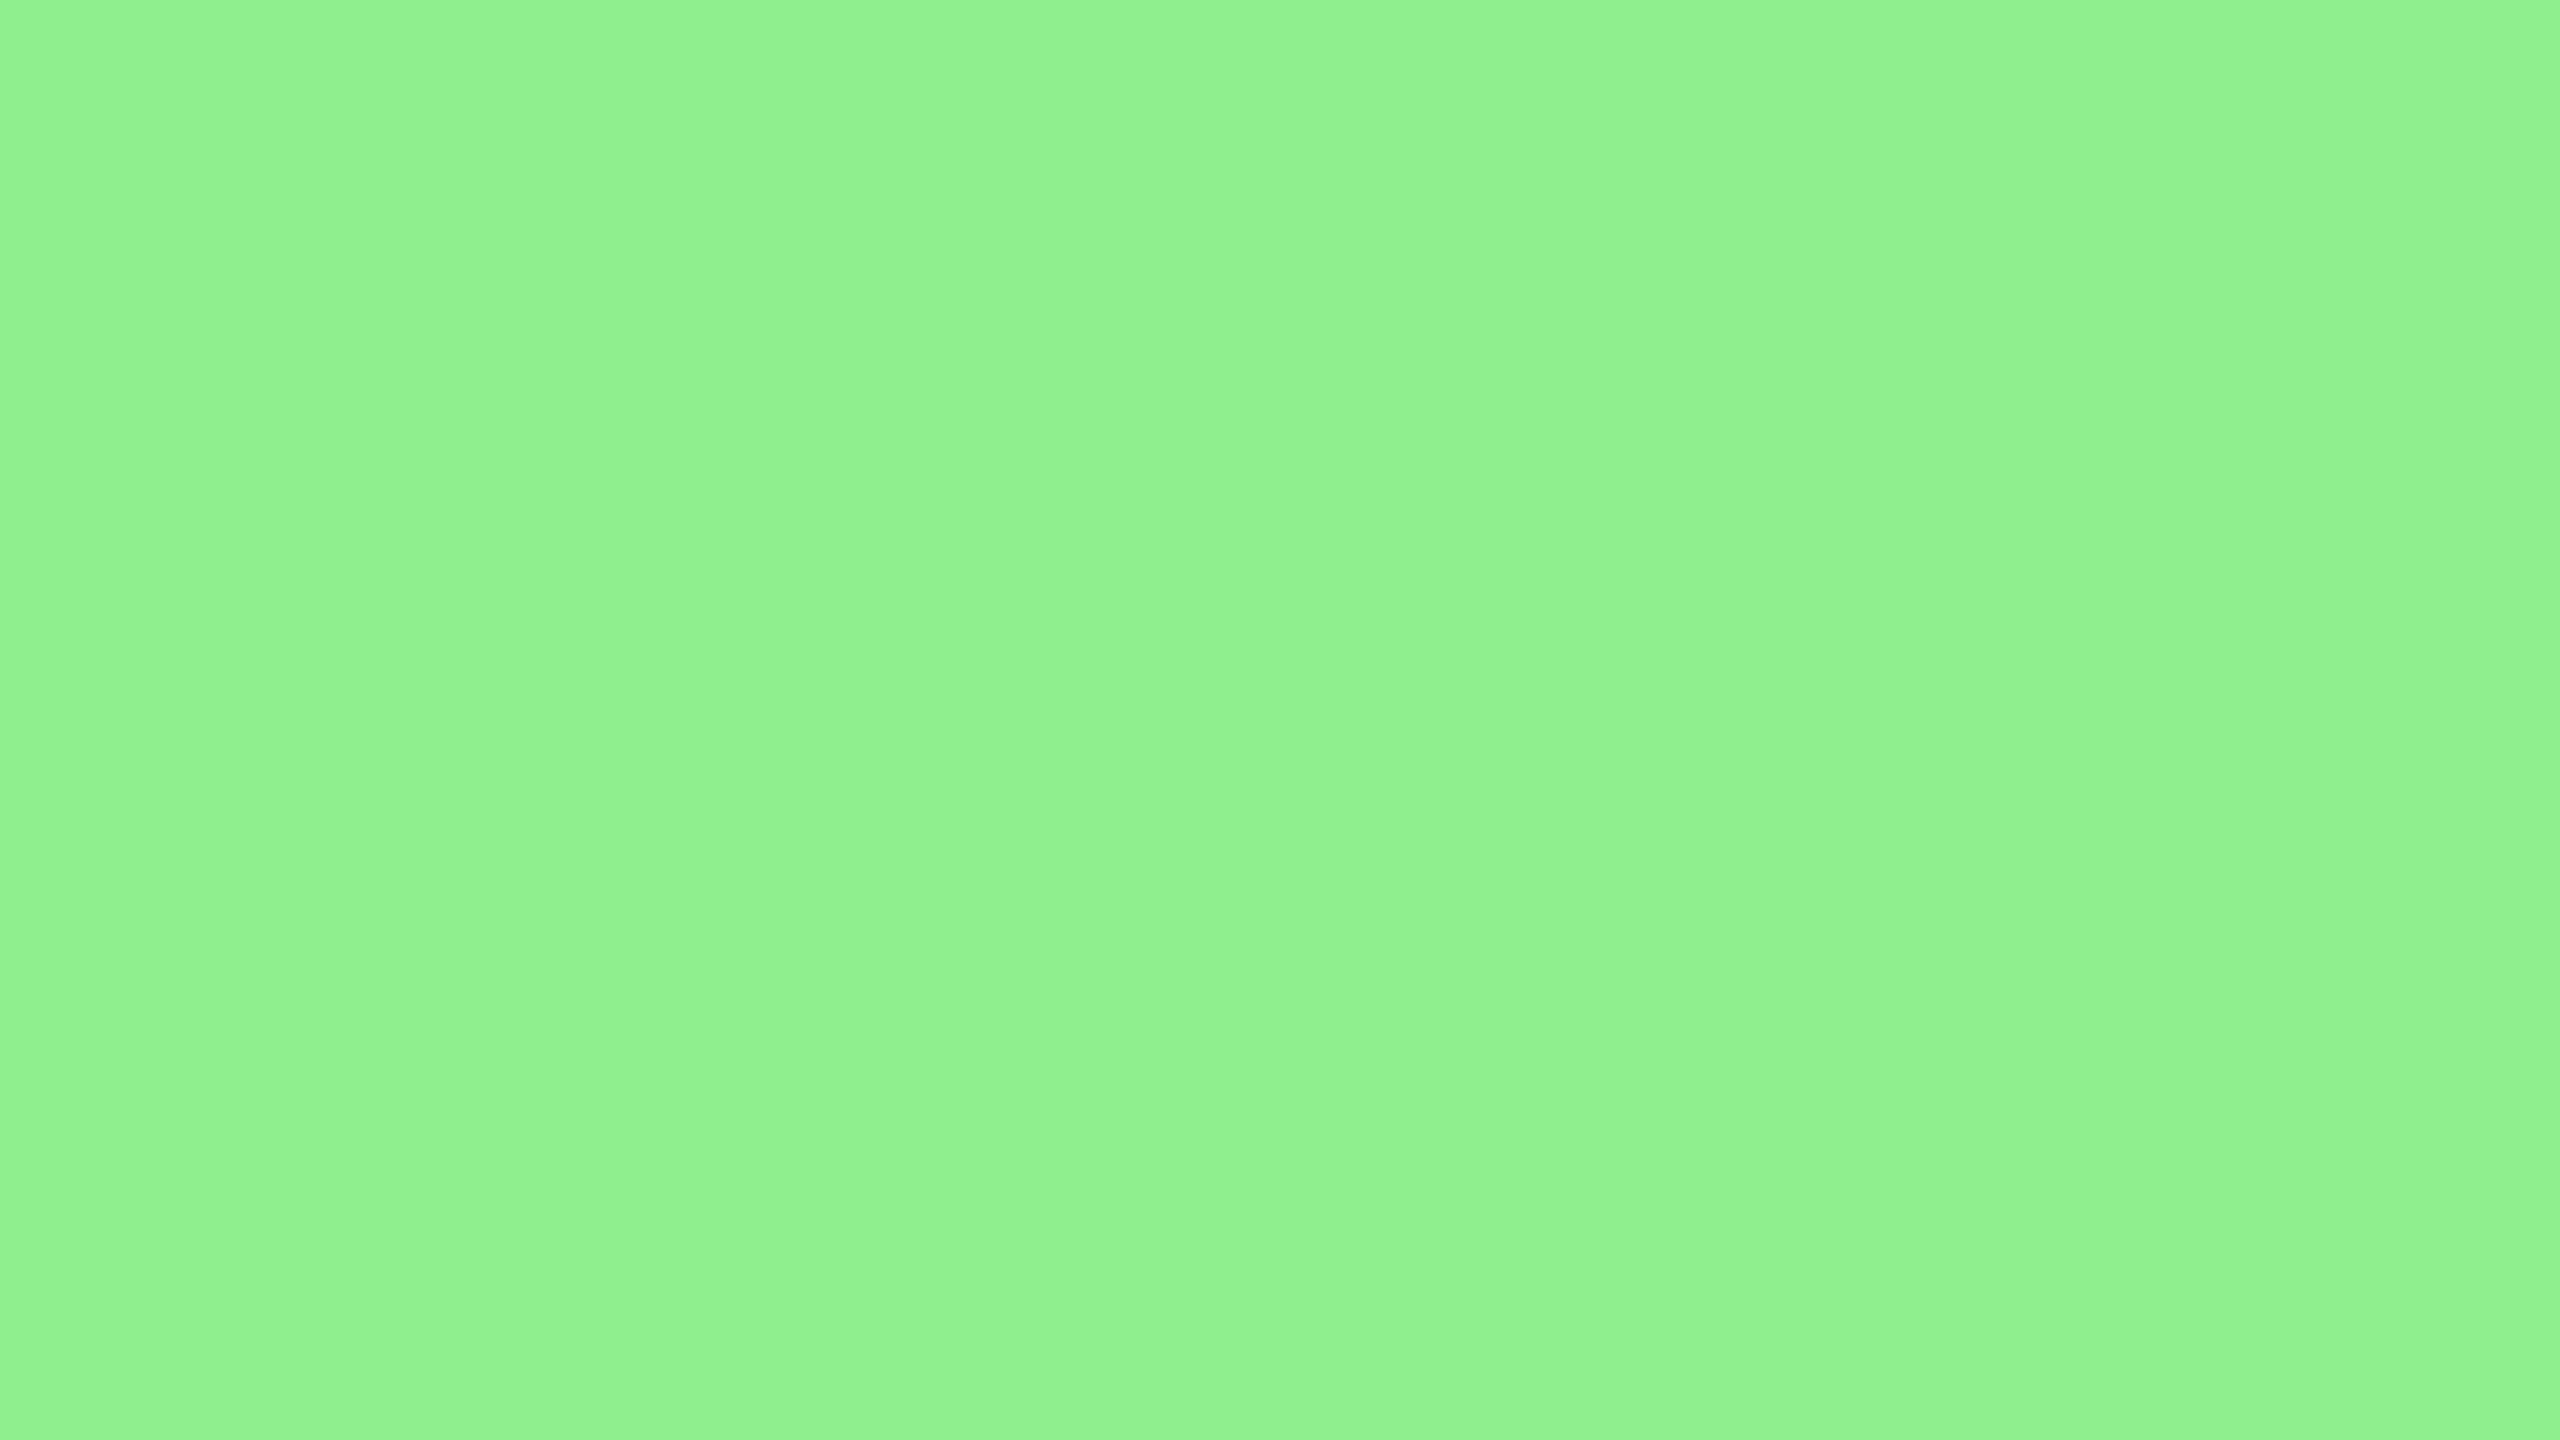 Light Green Color Background Images Pictures   Becuo 2560x1440